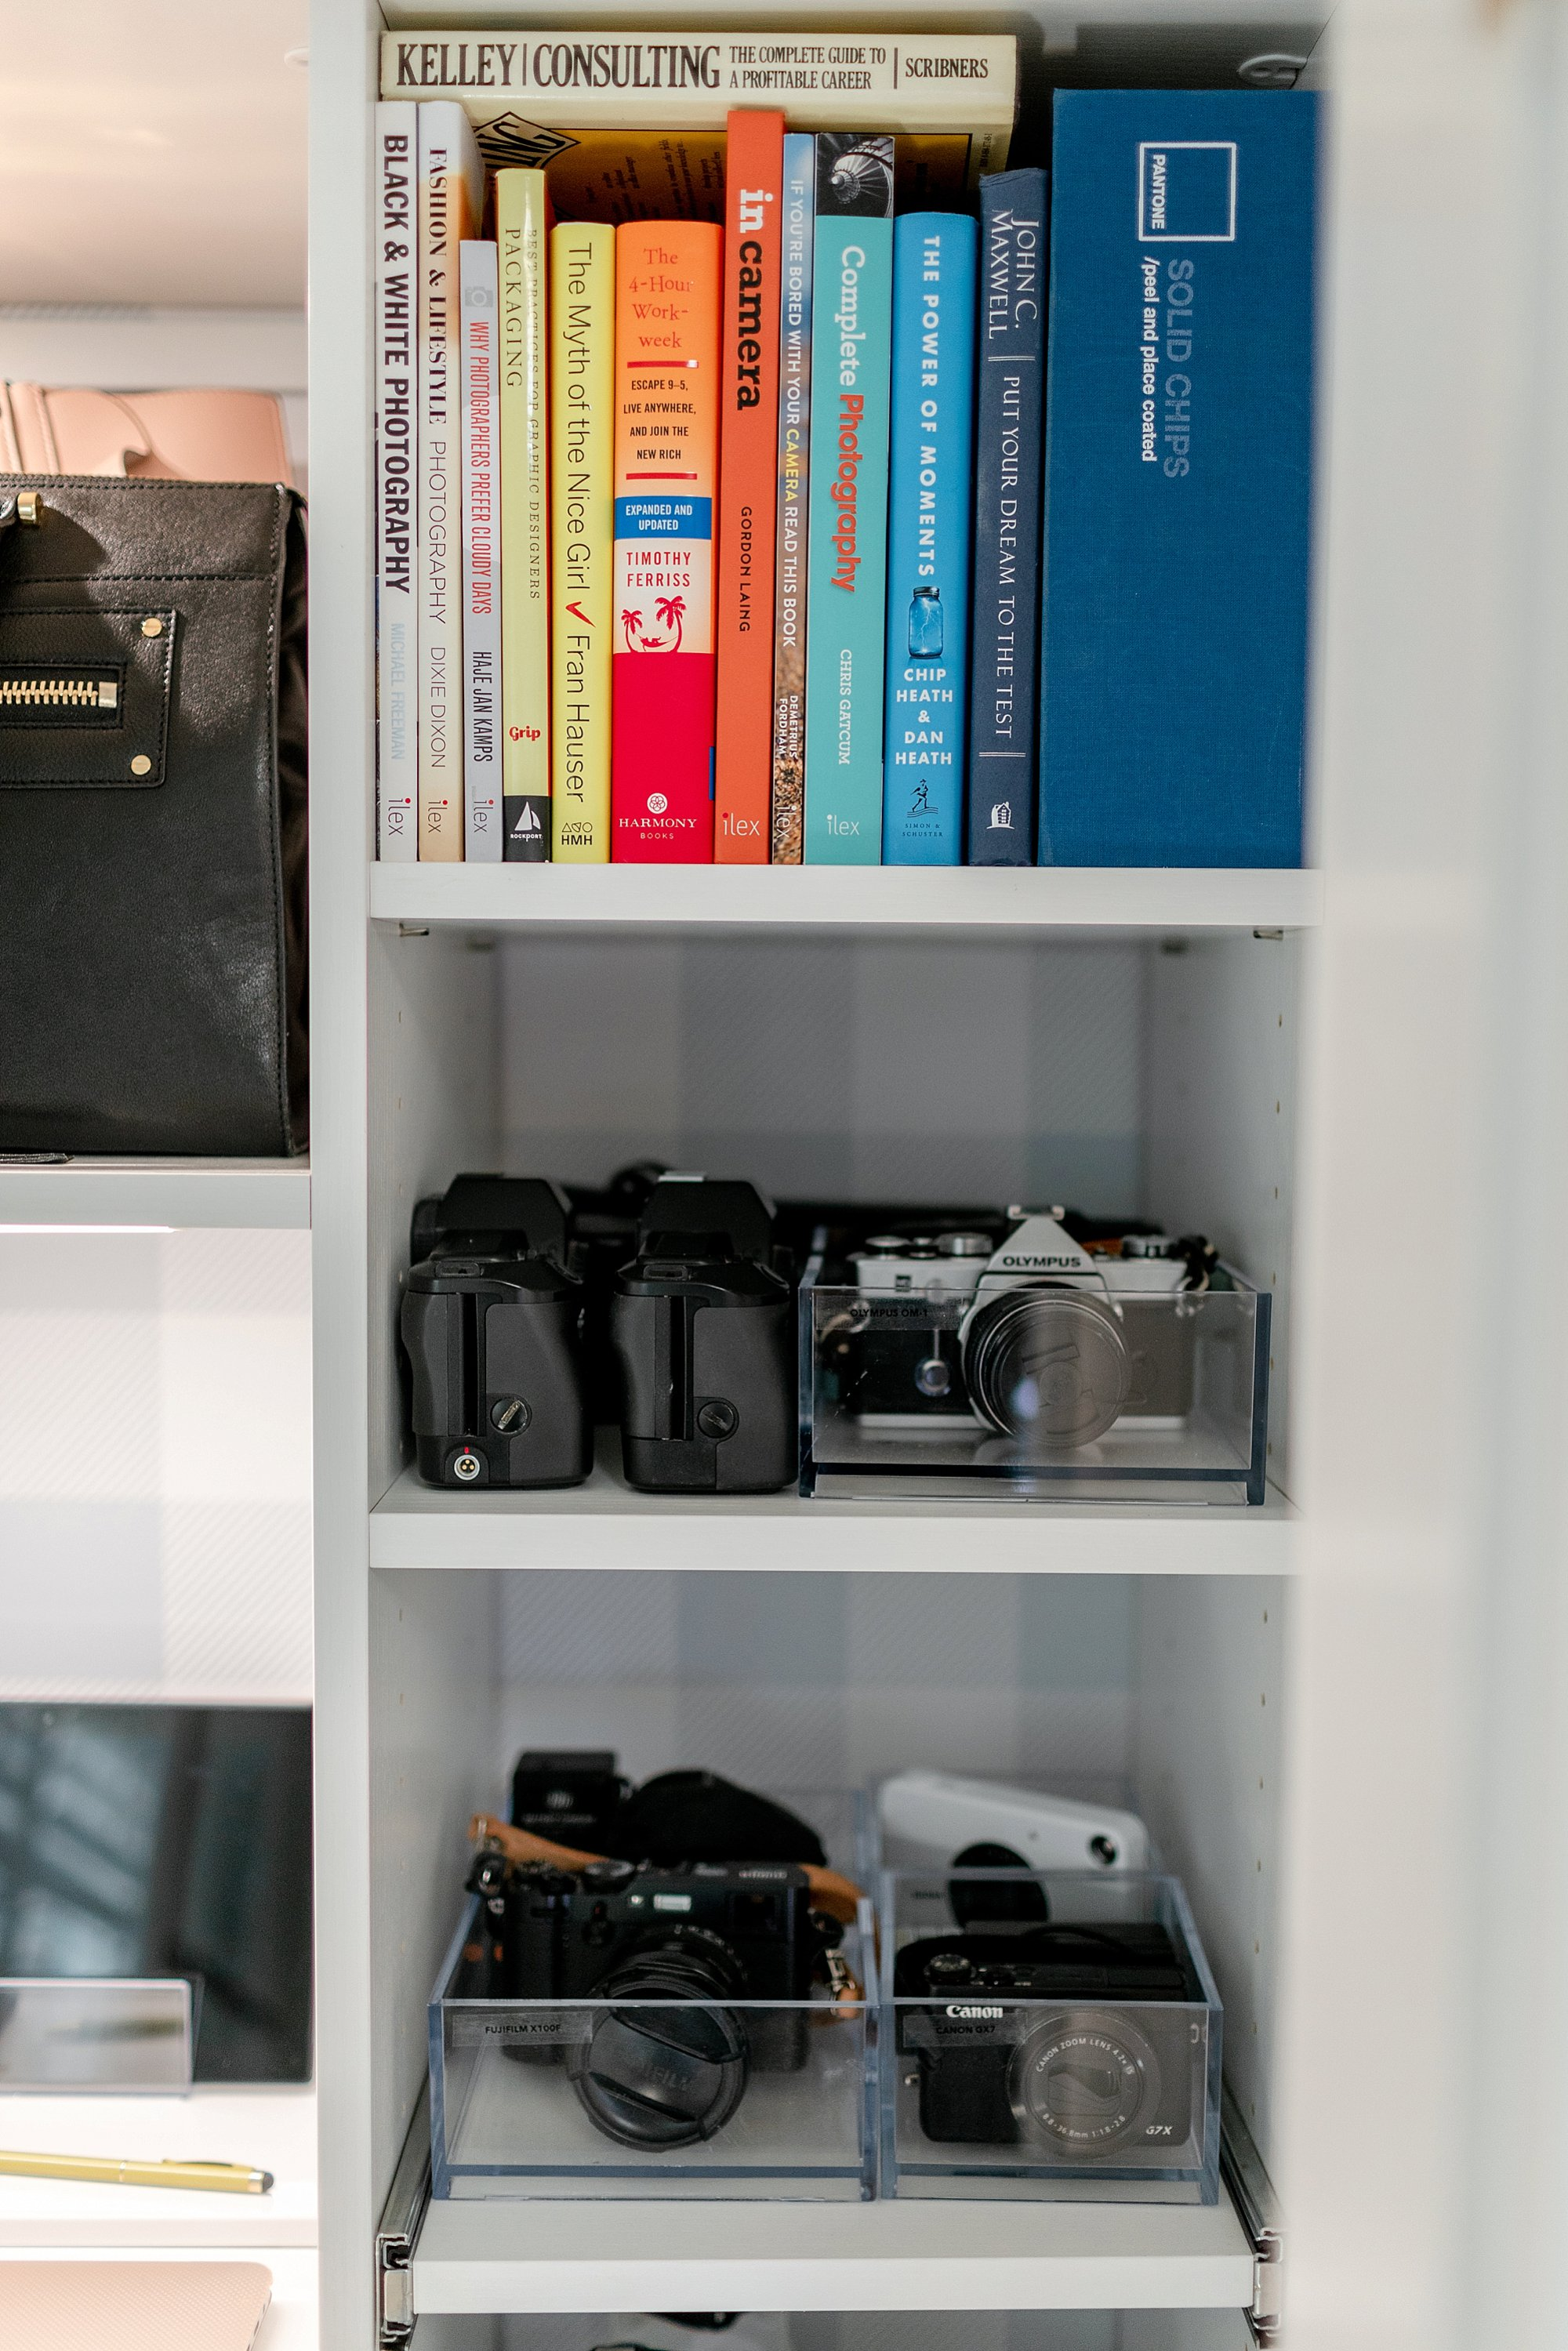 mirrorless camera bodies and business books: final reveal of office closet reveal belonging to photographer blogger Diana Elizabeth in phoenix arizona. created by California closets and with removable buffalo check wallpaper #office #closet #wallpaper #organization #lensorganization #lensdrawer